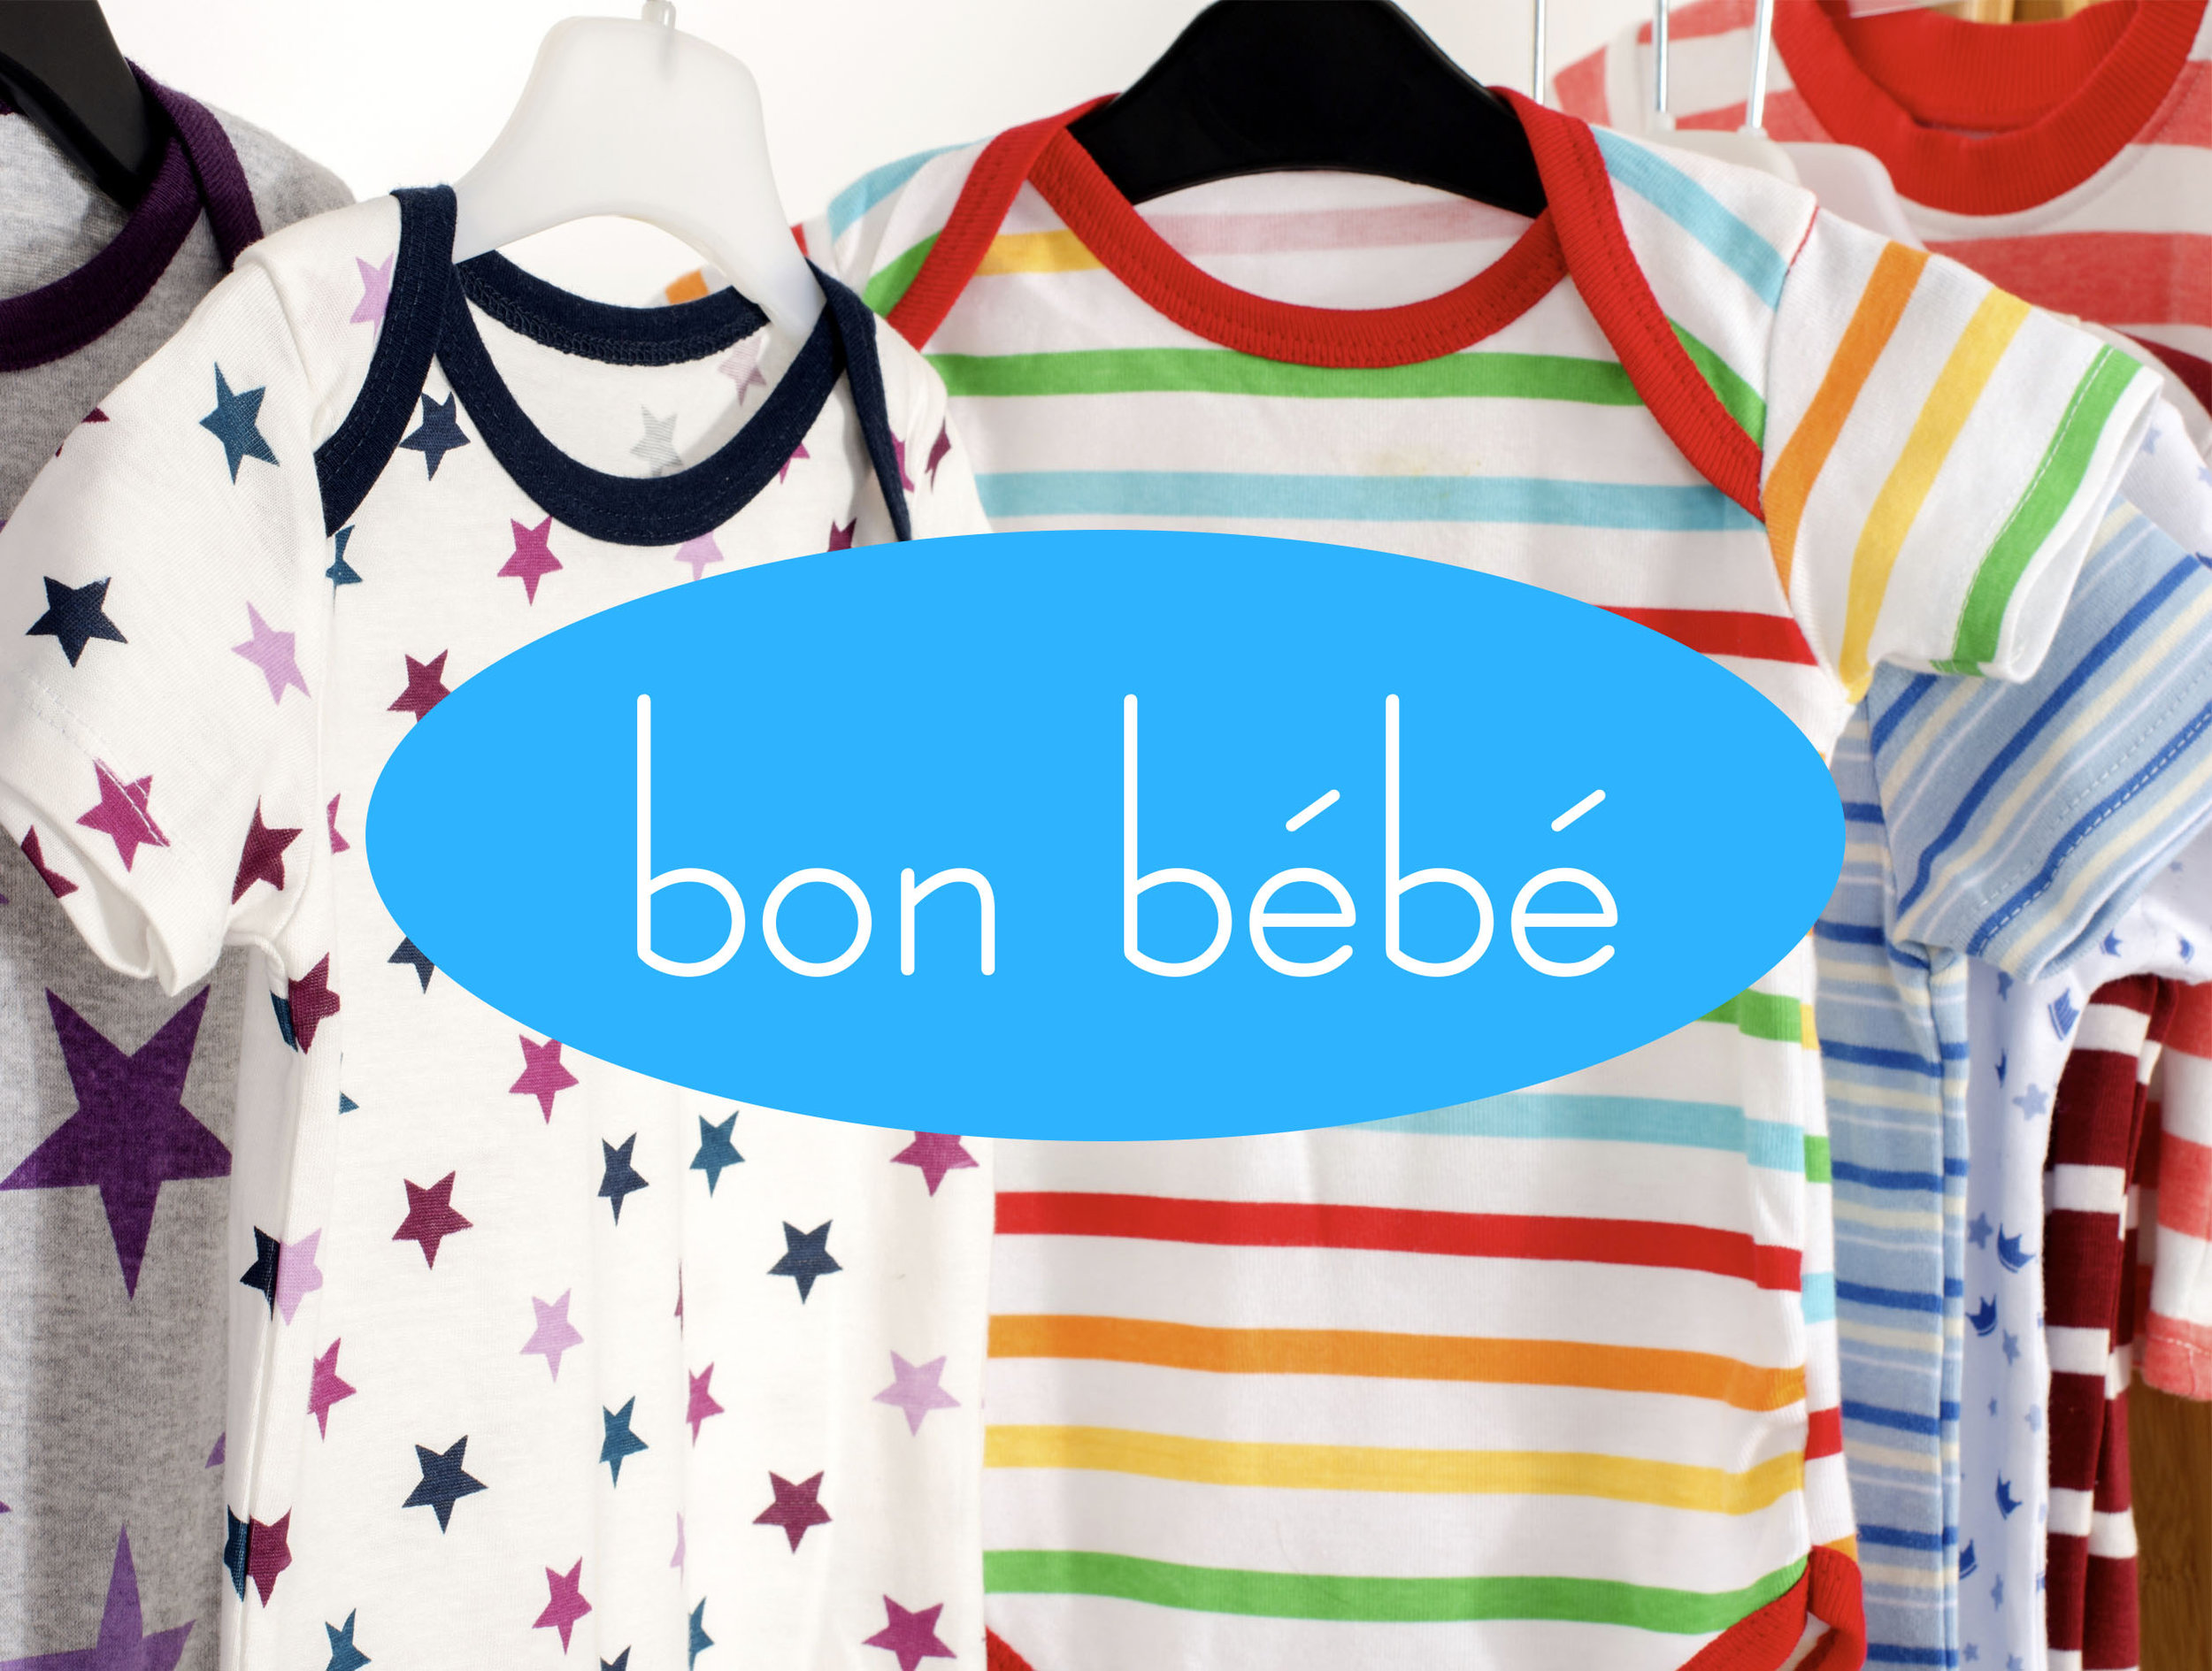 Based around seasonal playwear sets and essential newborn basics, our ever expanding bon bébé brand has it all. We strive to consistently deliver the quality. variety and design that our customers always expect. We set an industry standard for exceptional value that is often copied but never equaled.